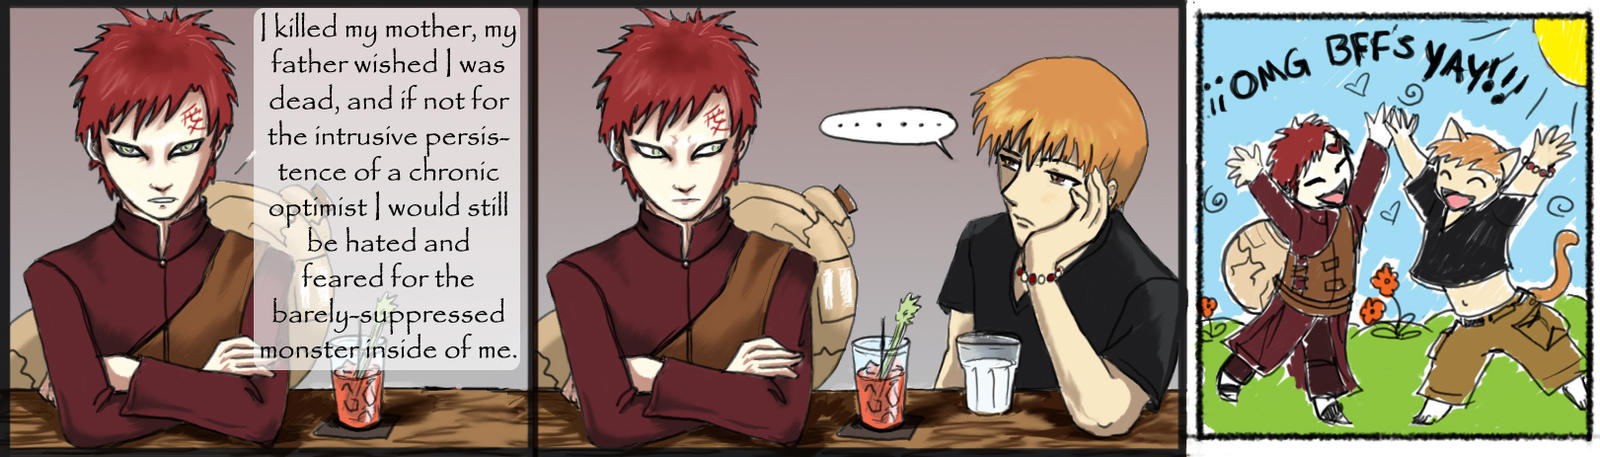 Two guys walk into a bar... by janey-jane